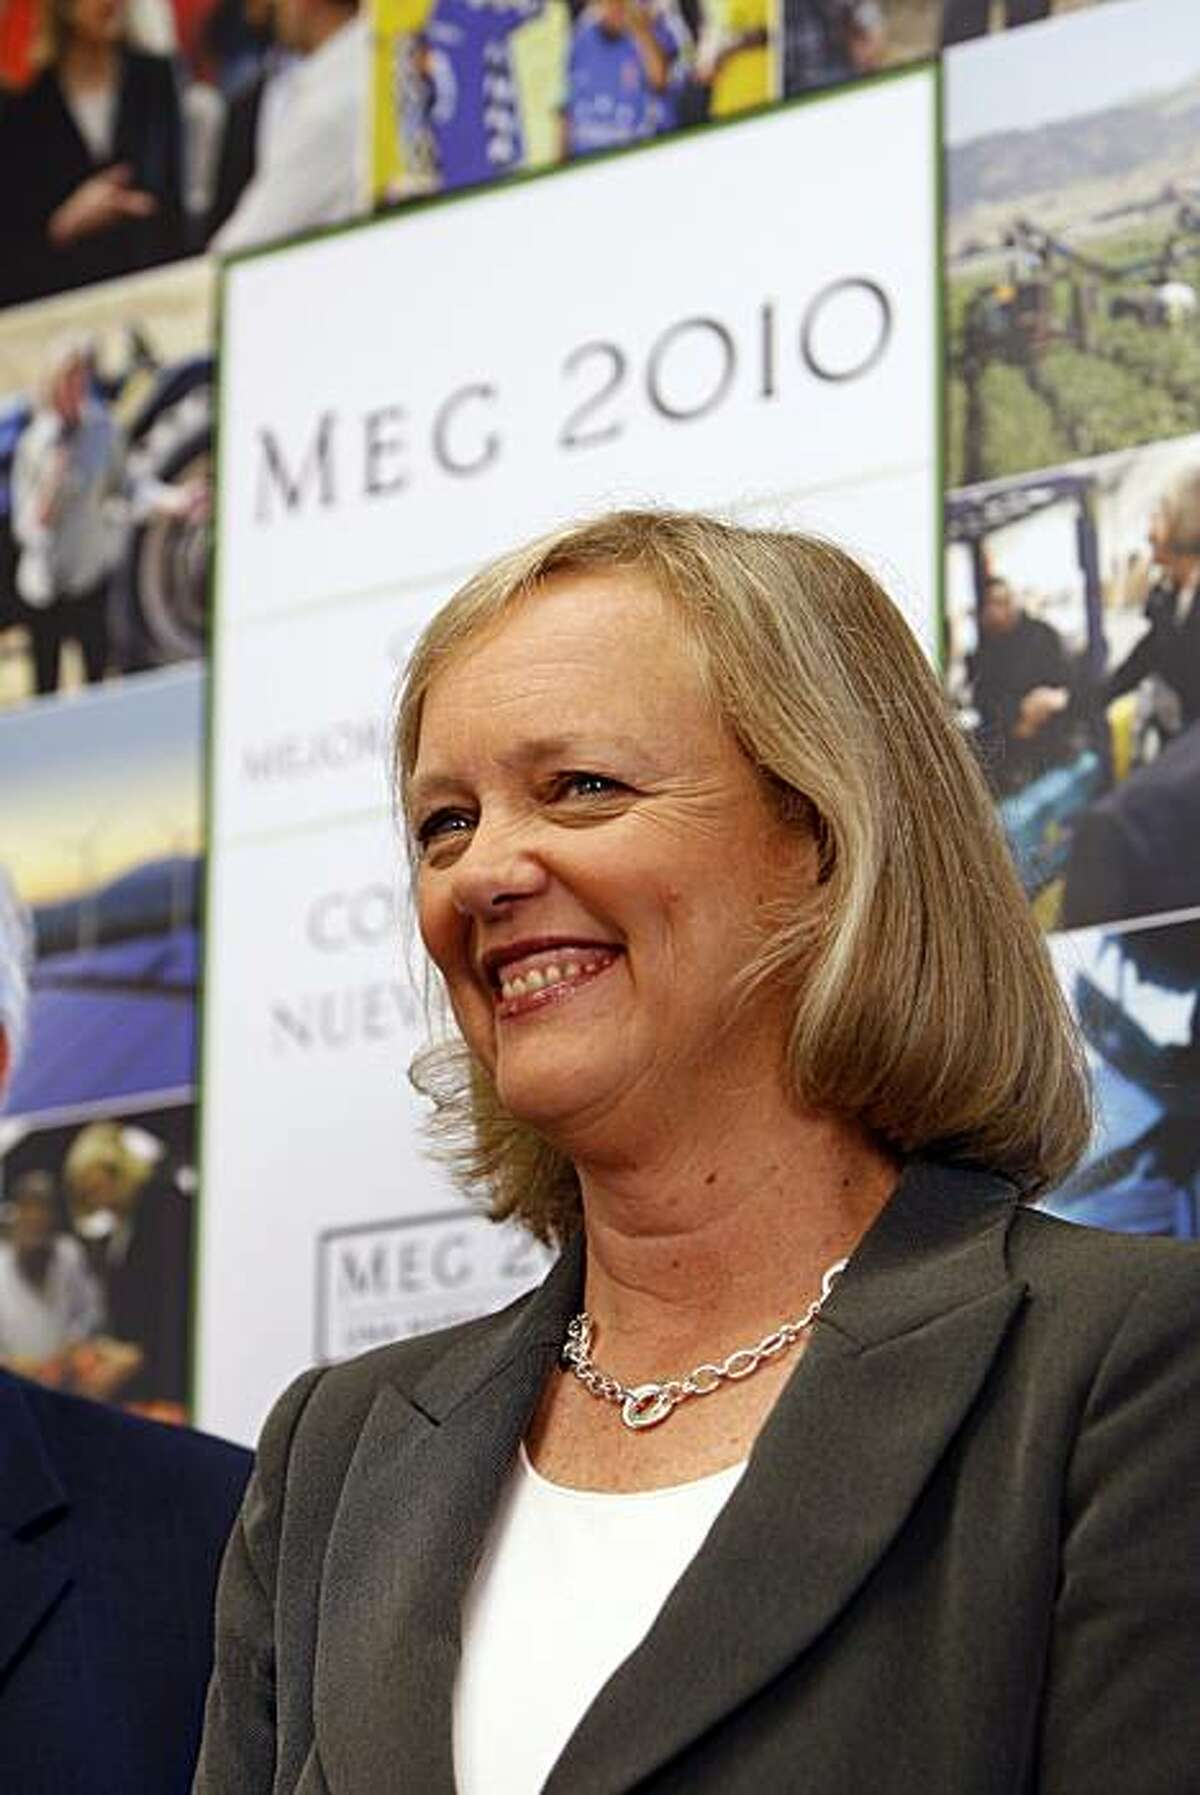 Republican gubernatorial candidate Meg Whitman speaks to supporters about her plan to create jobs at her office opening event in East Los Angeles on Wednesday, Aug. 4, 2010, in Los Angeles, Calif. Whitman's rival in the November general election is Democrat Jerry Brown.